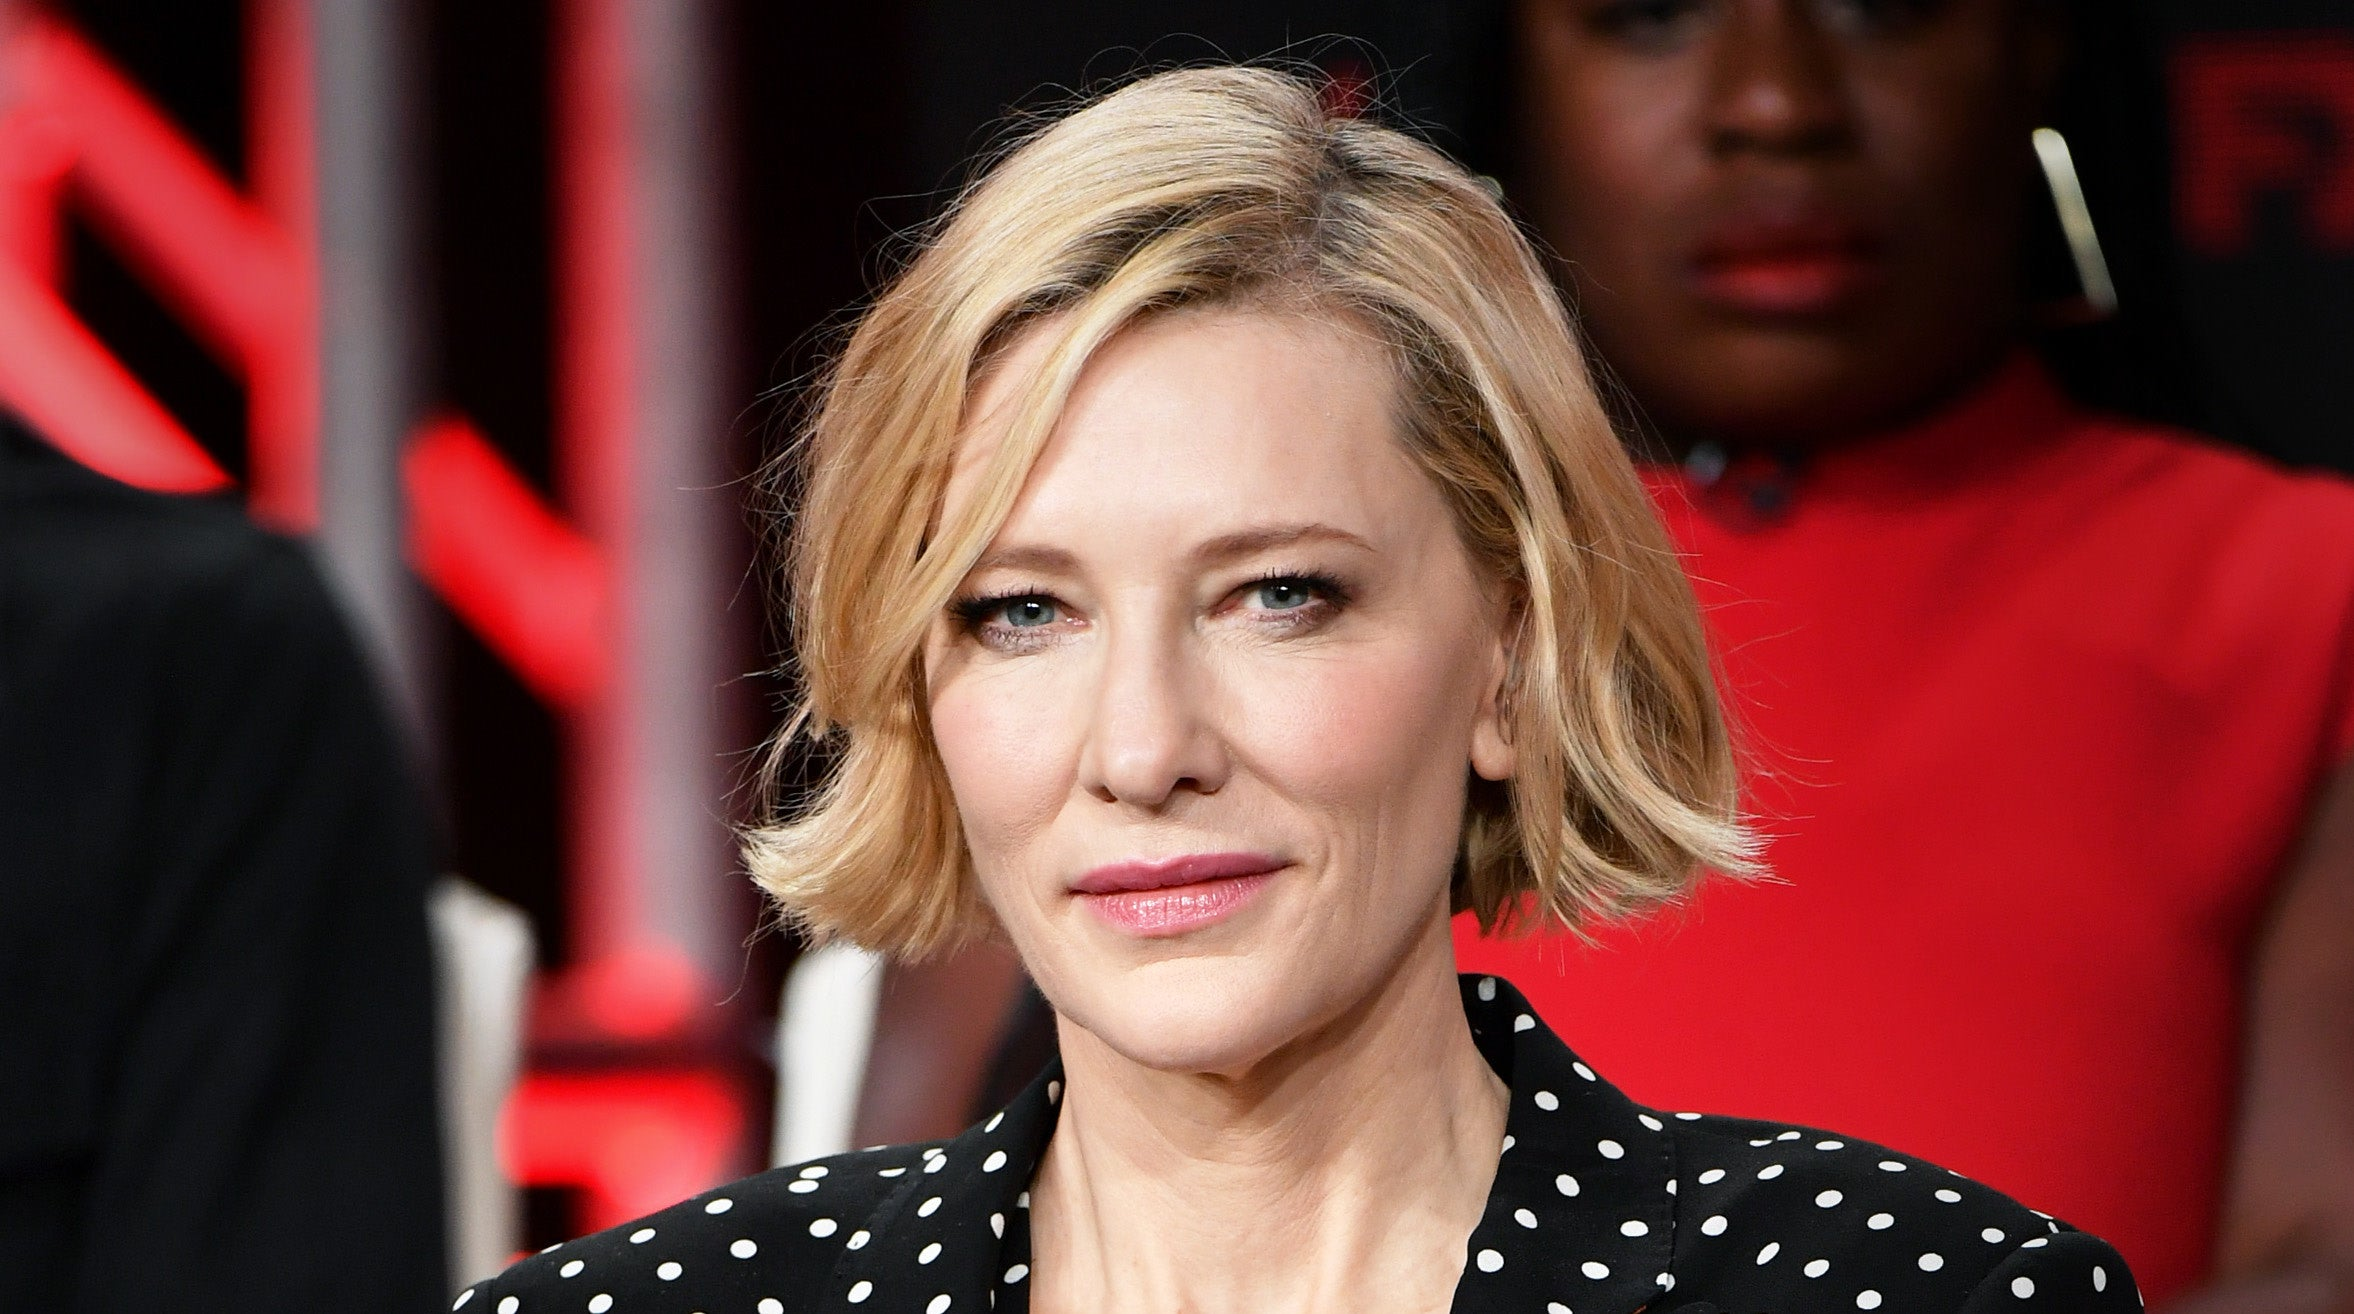 Oh, Cate Blanchett Is Starring In The Borderlands Movie